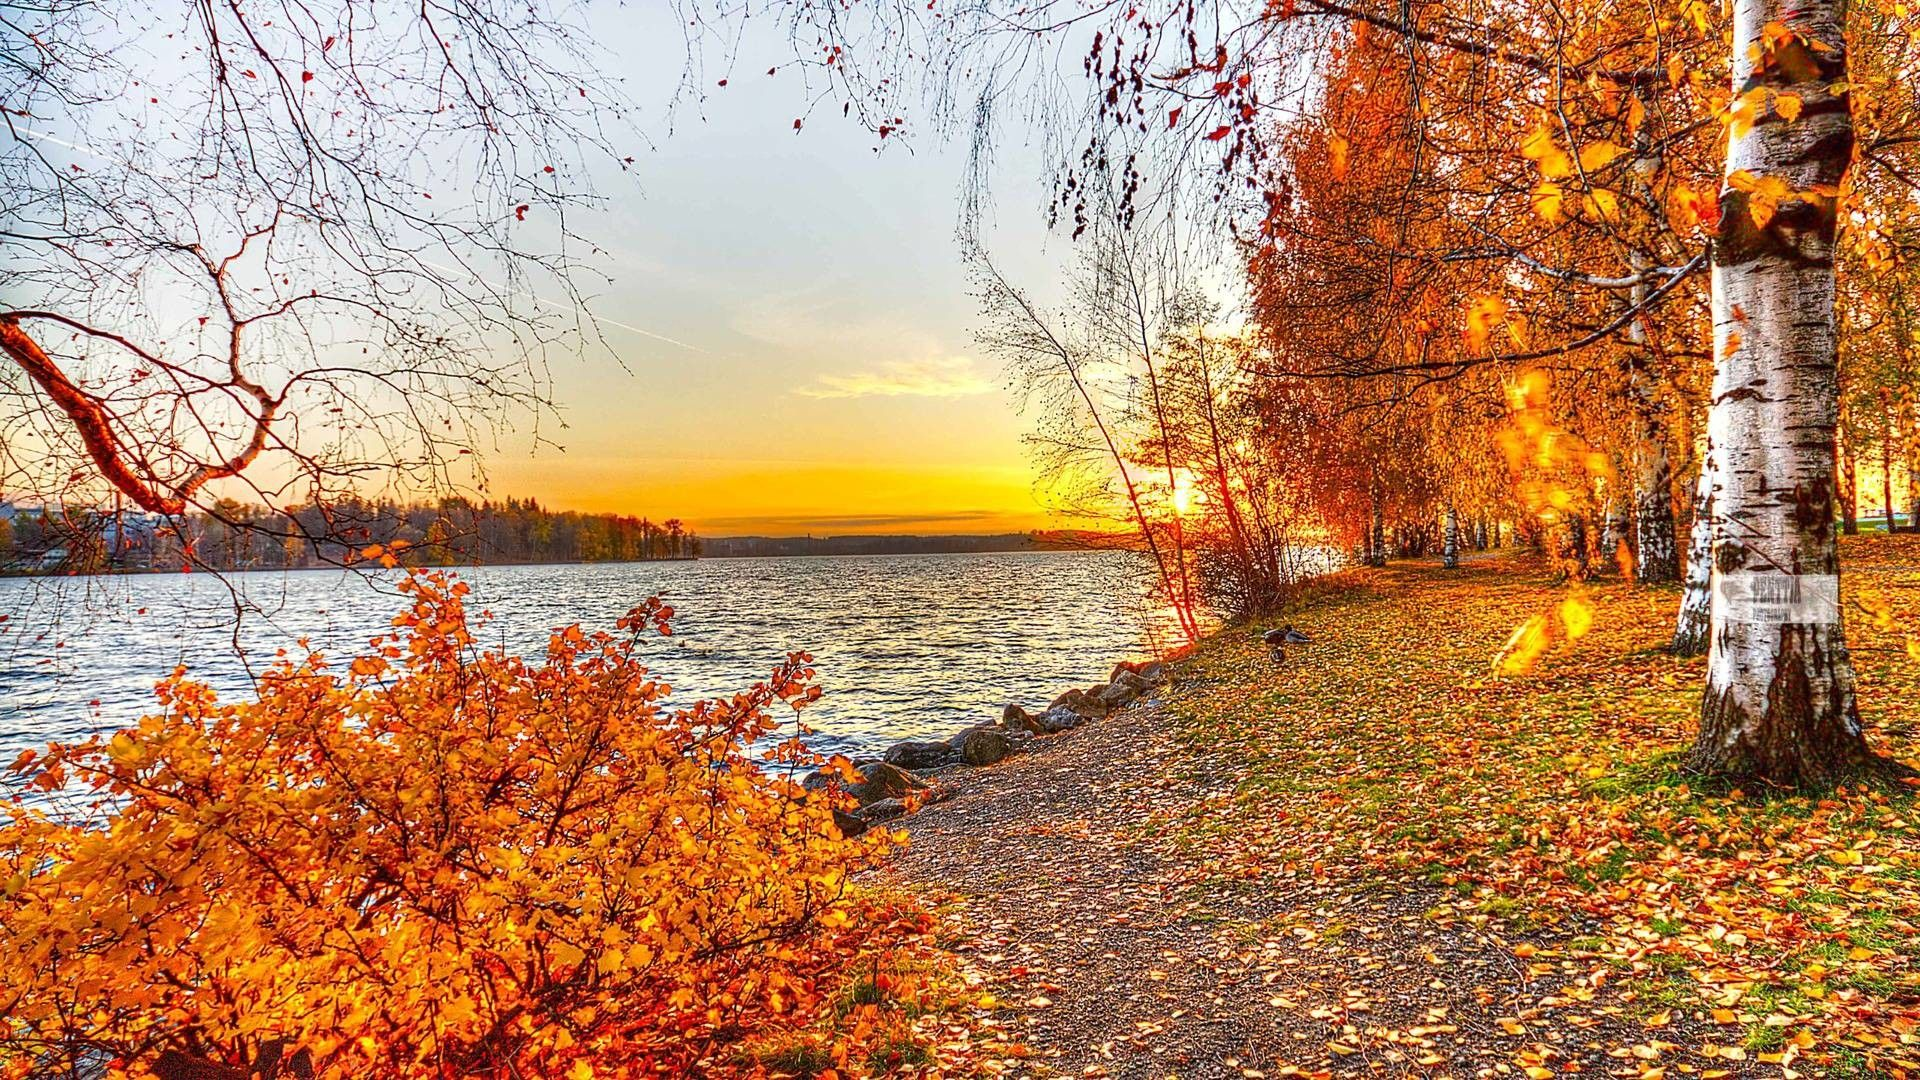 435034 Jpg Autumn Landscape Landscape Wallpaper Fall Wallpaper